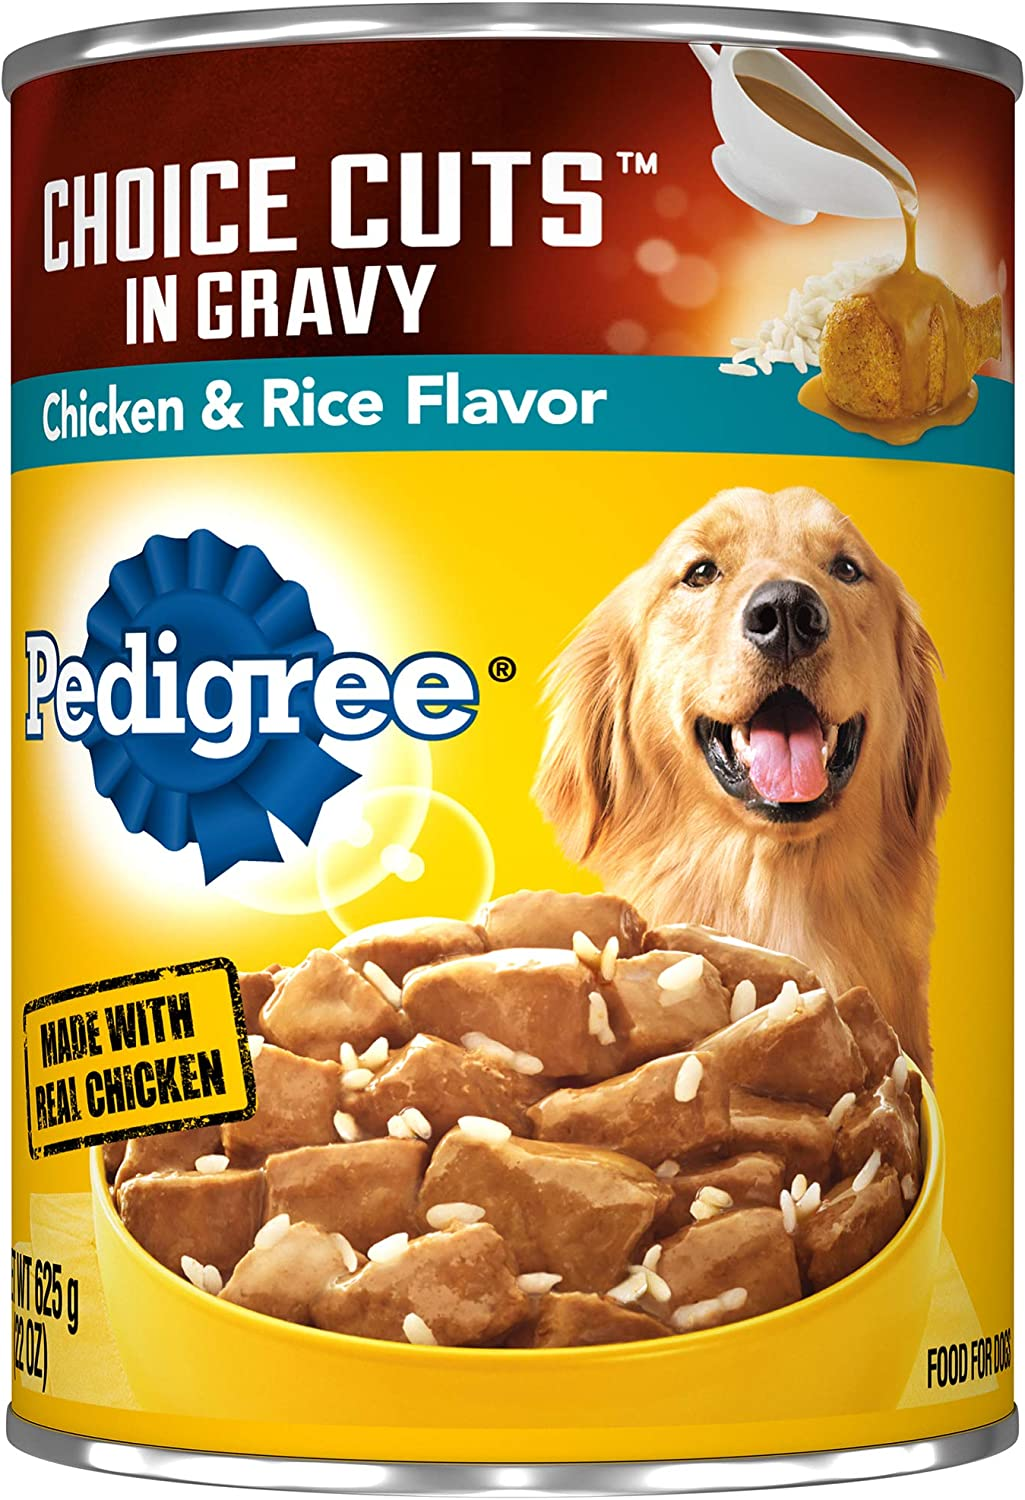 Pedigree Choice CUTS in Gravy Adult Canned Wet Dog Food, 22 oz. Cans (Pack of 12)